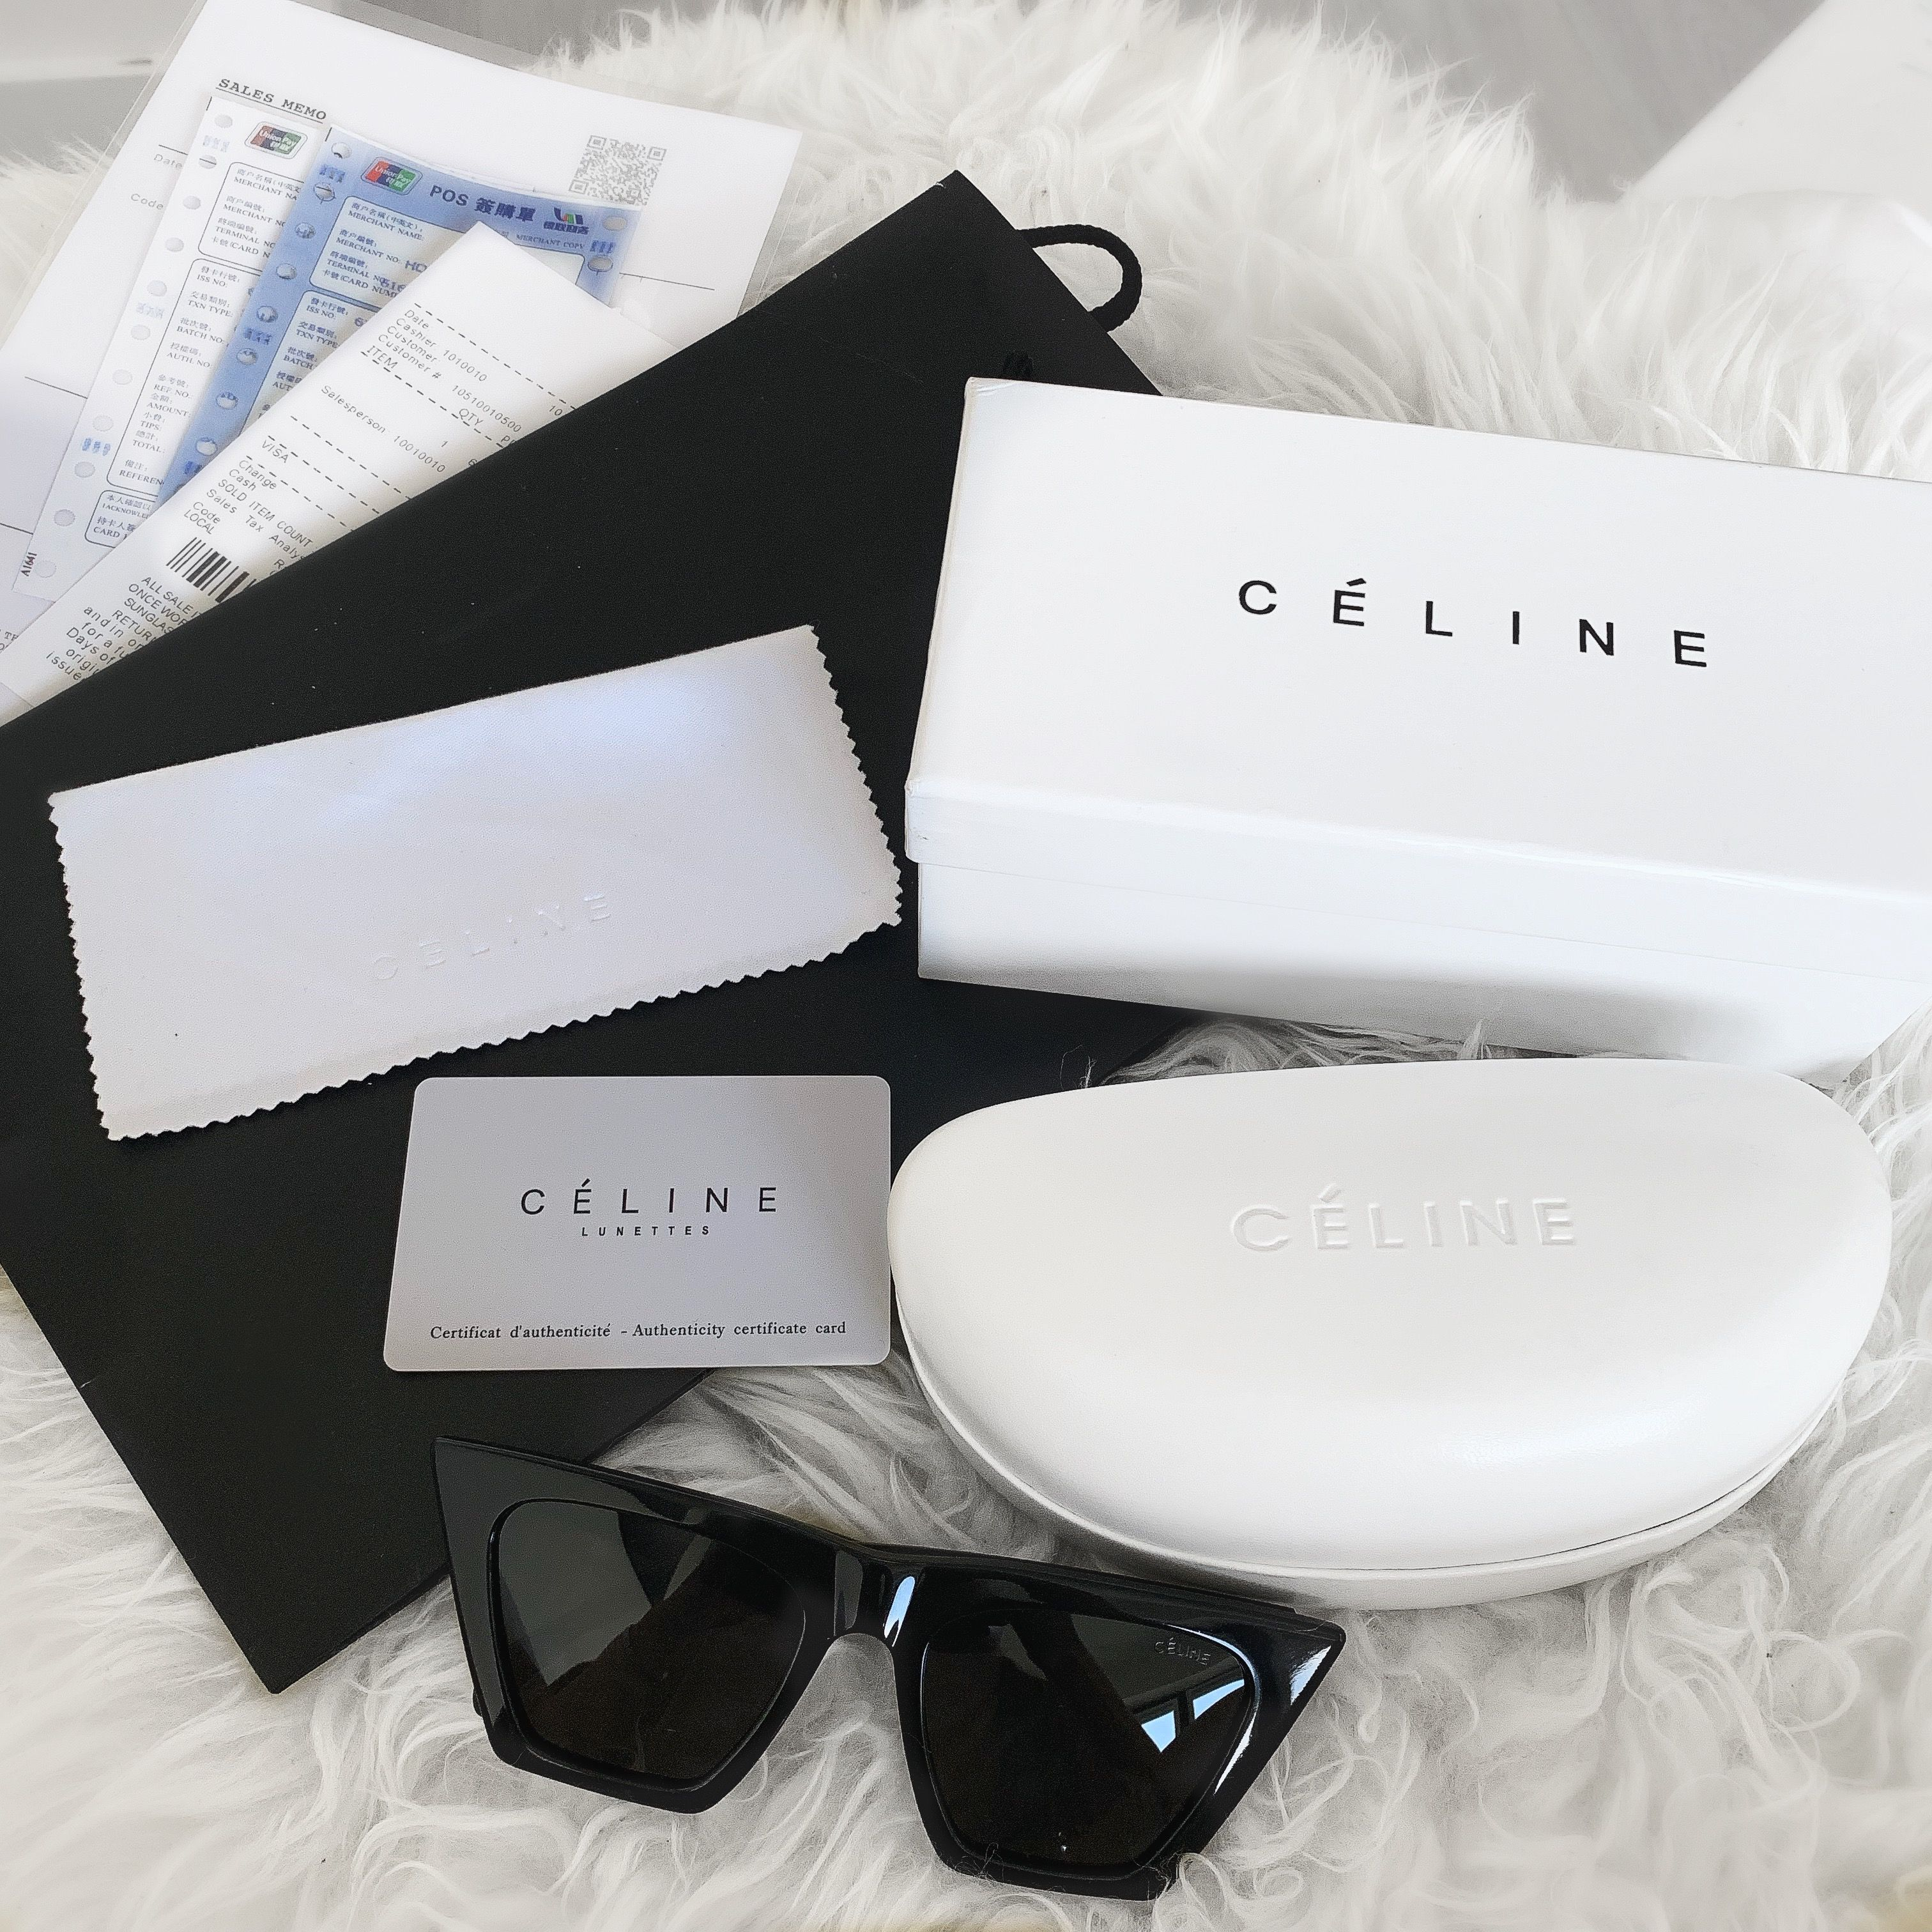 Celine edge sunglasses Black sunglasses women